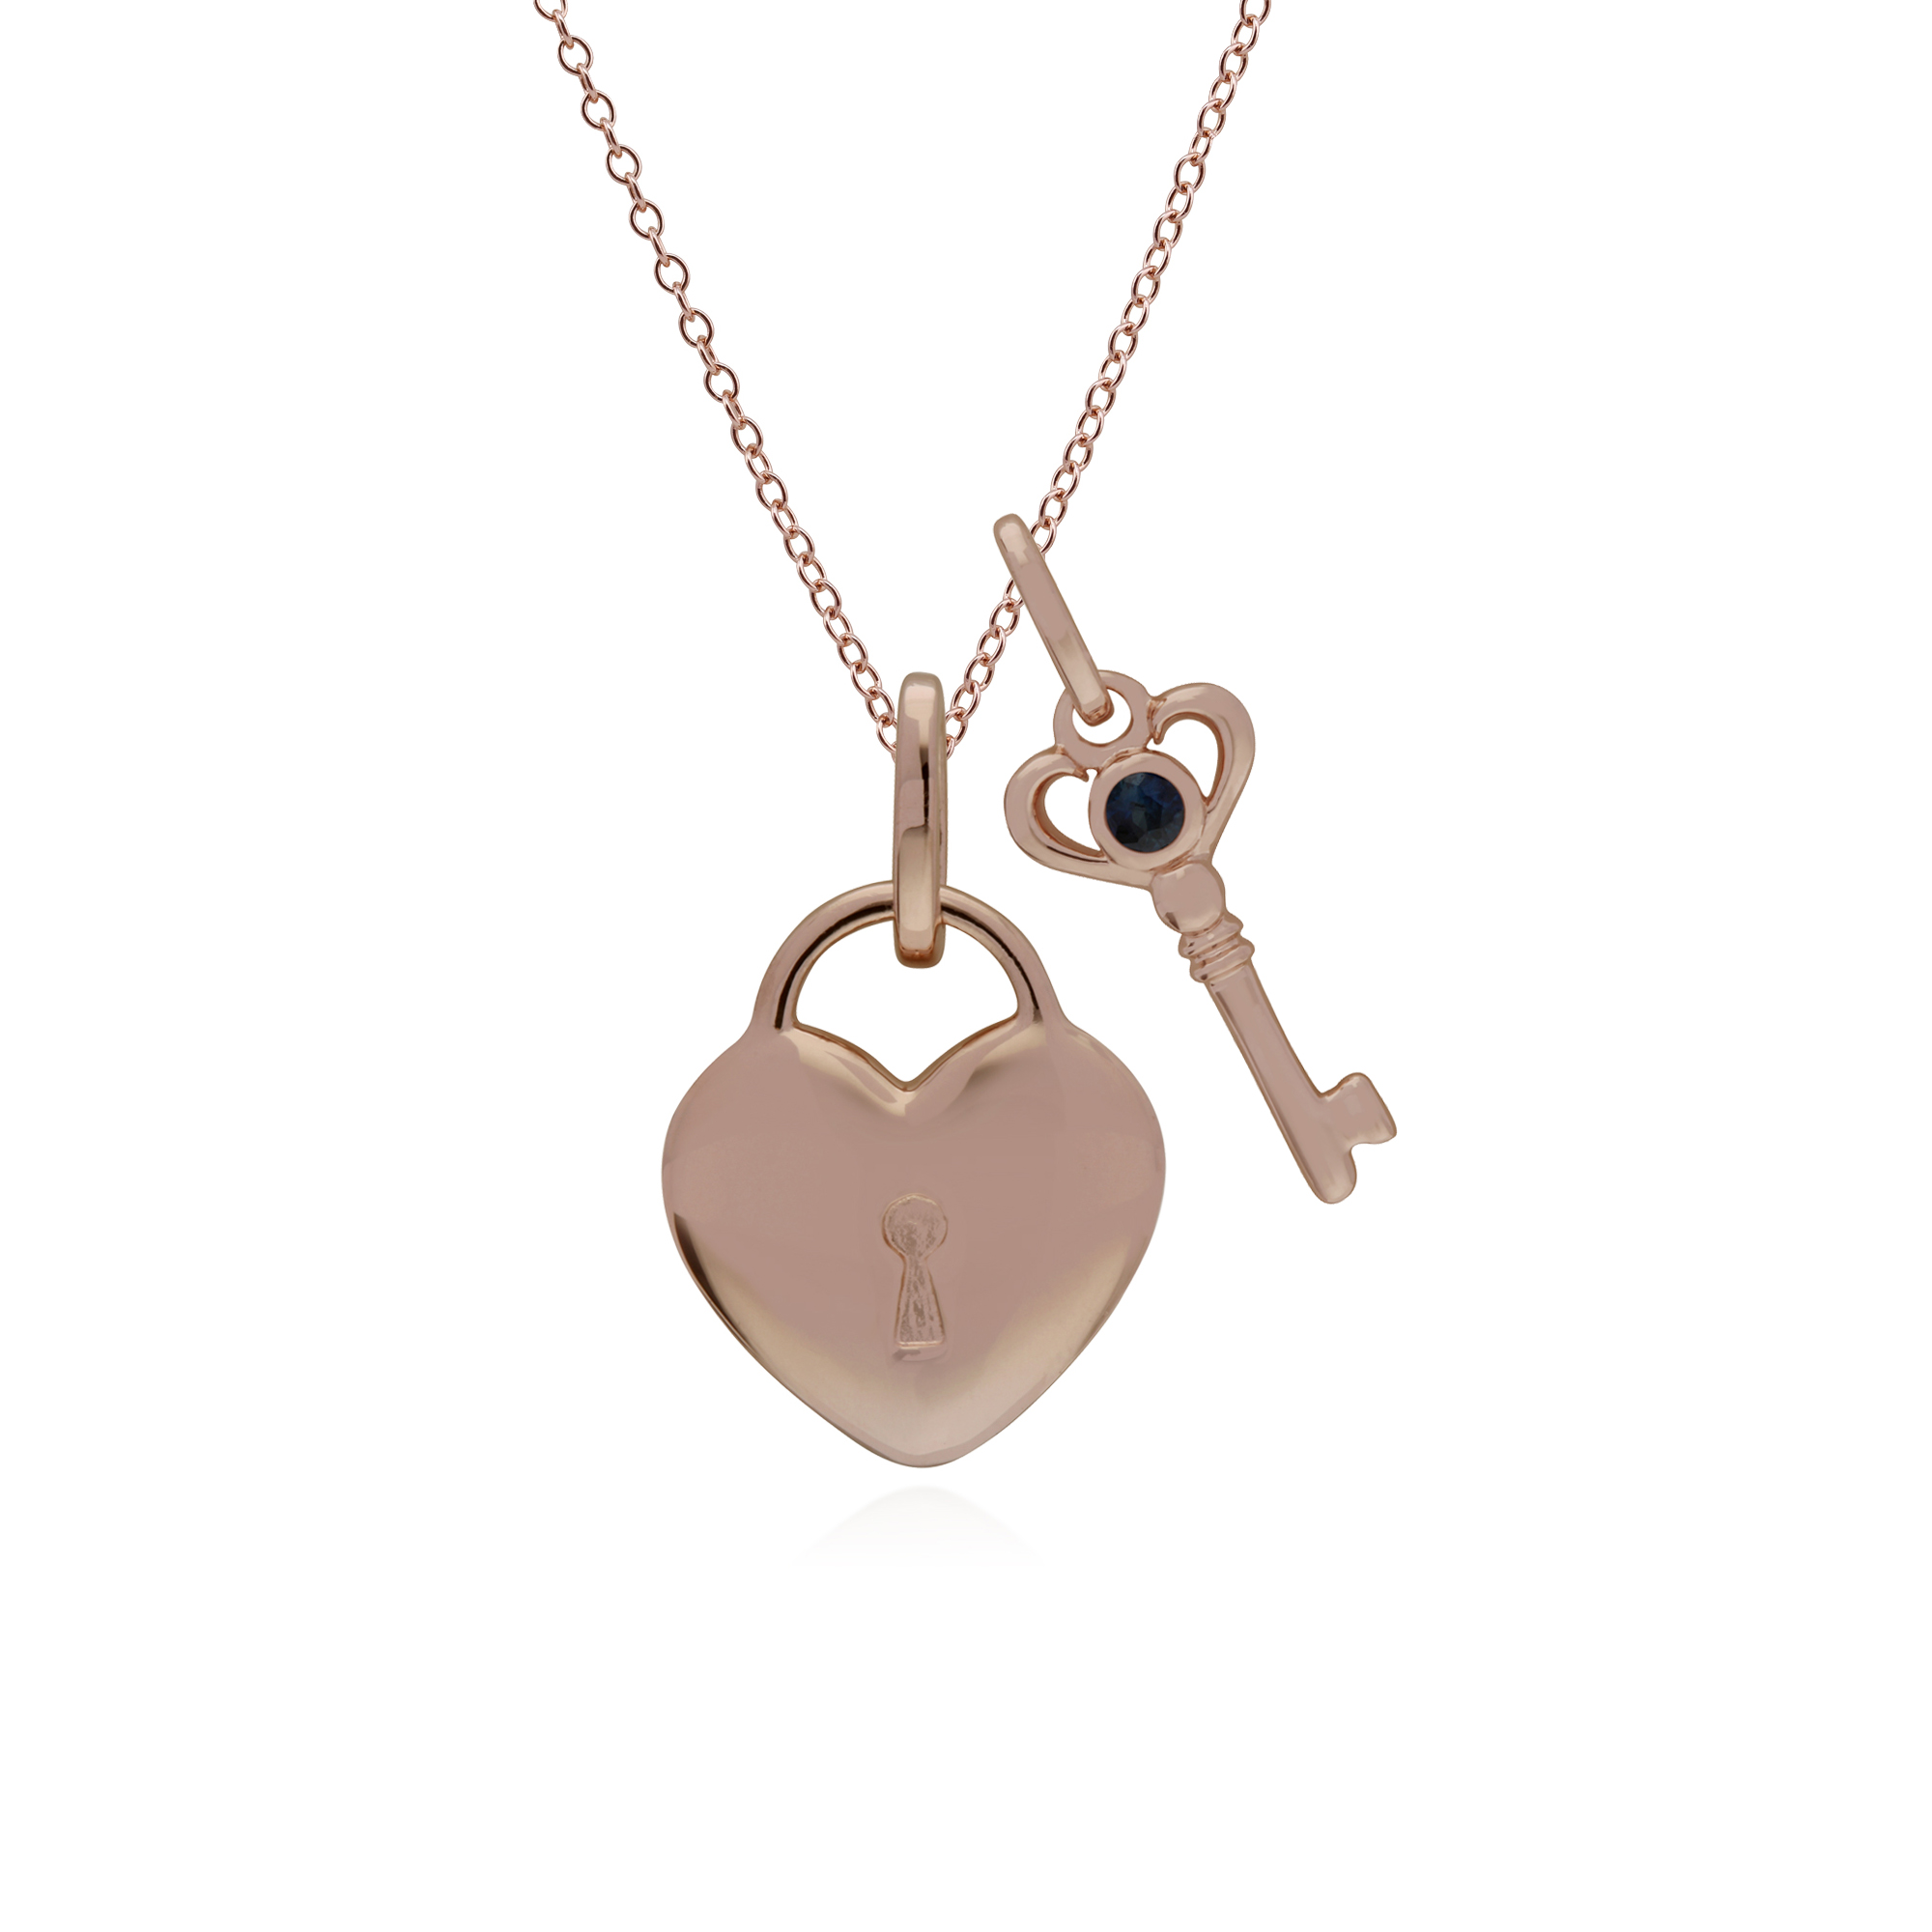 4f6bb058b Details about Rose Gold Sterling Silver Plain Heart & Sapphire Key Charm on  45cm Chain